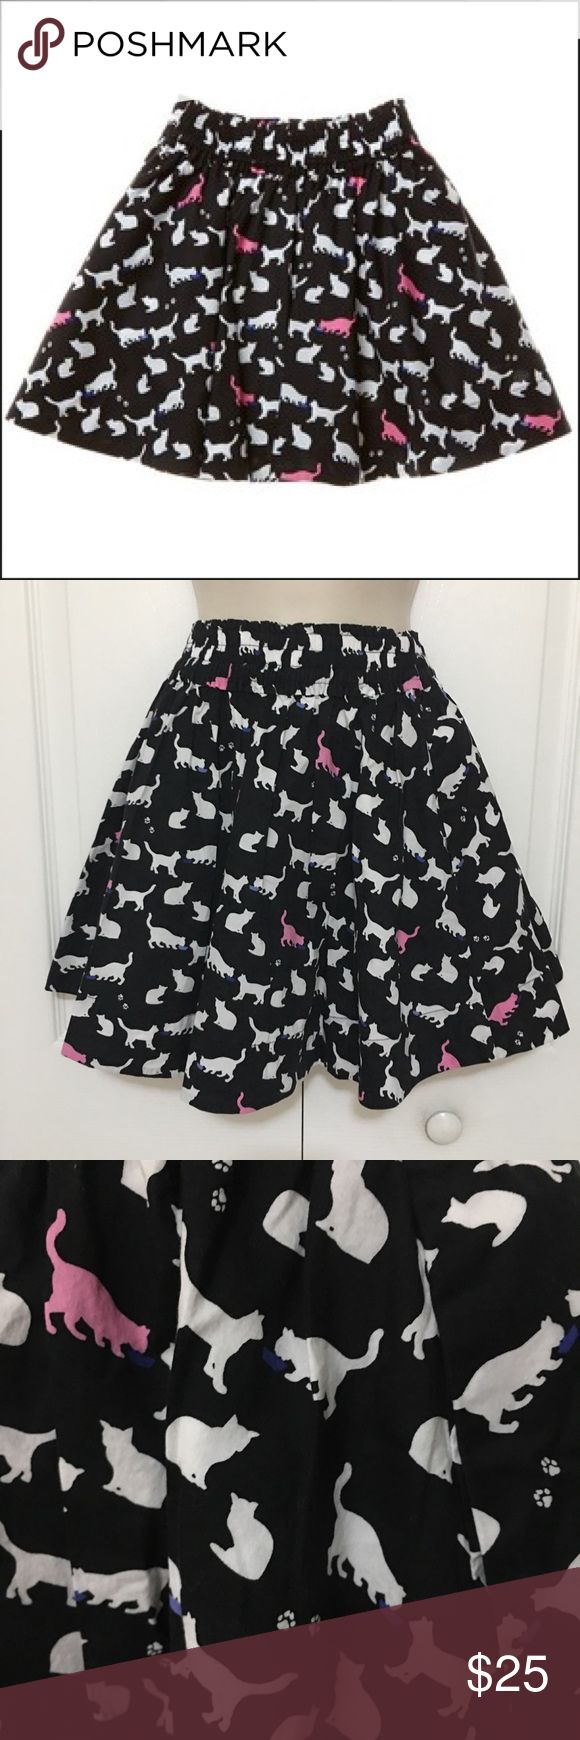 "💋Kate Spade girls' cat print skirt💋 Size Medium Made in China Made of 97% cotton, 3% elastane From the ""Skirt the Rules"" collection, Elastic band flare short skirt with cute cat print design in black, pink, purple and white.  Preowned and in excellent condition. Waist band: 11.5"" Length: 15.5"" kate spade Bottoms Skirts"